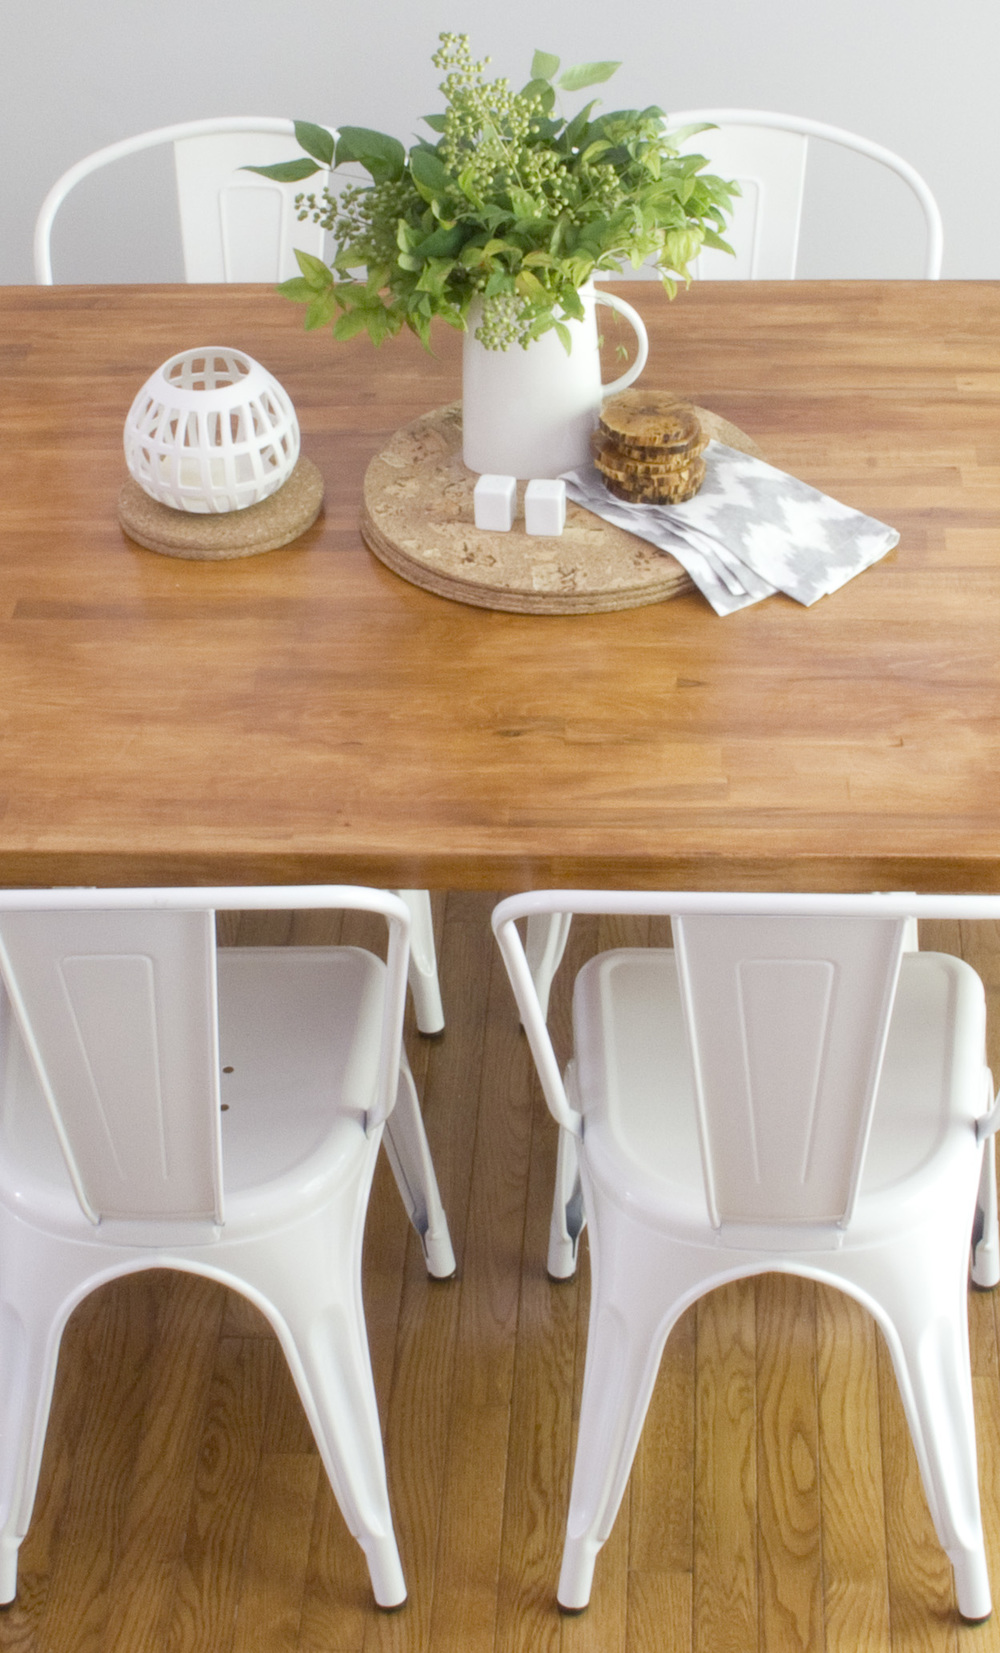 DiningChairs_CC1.jpg